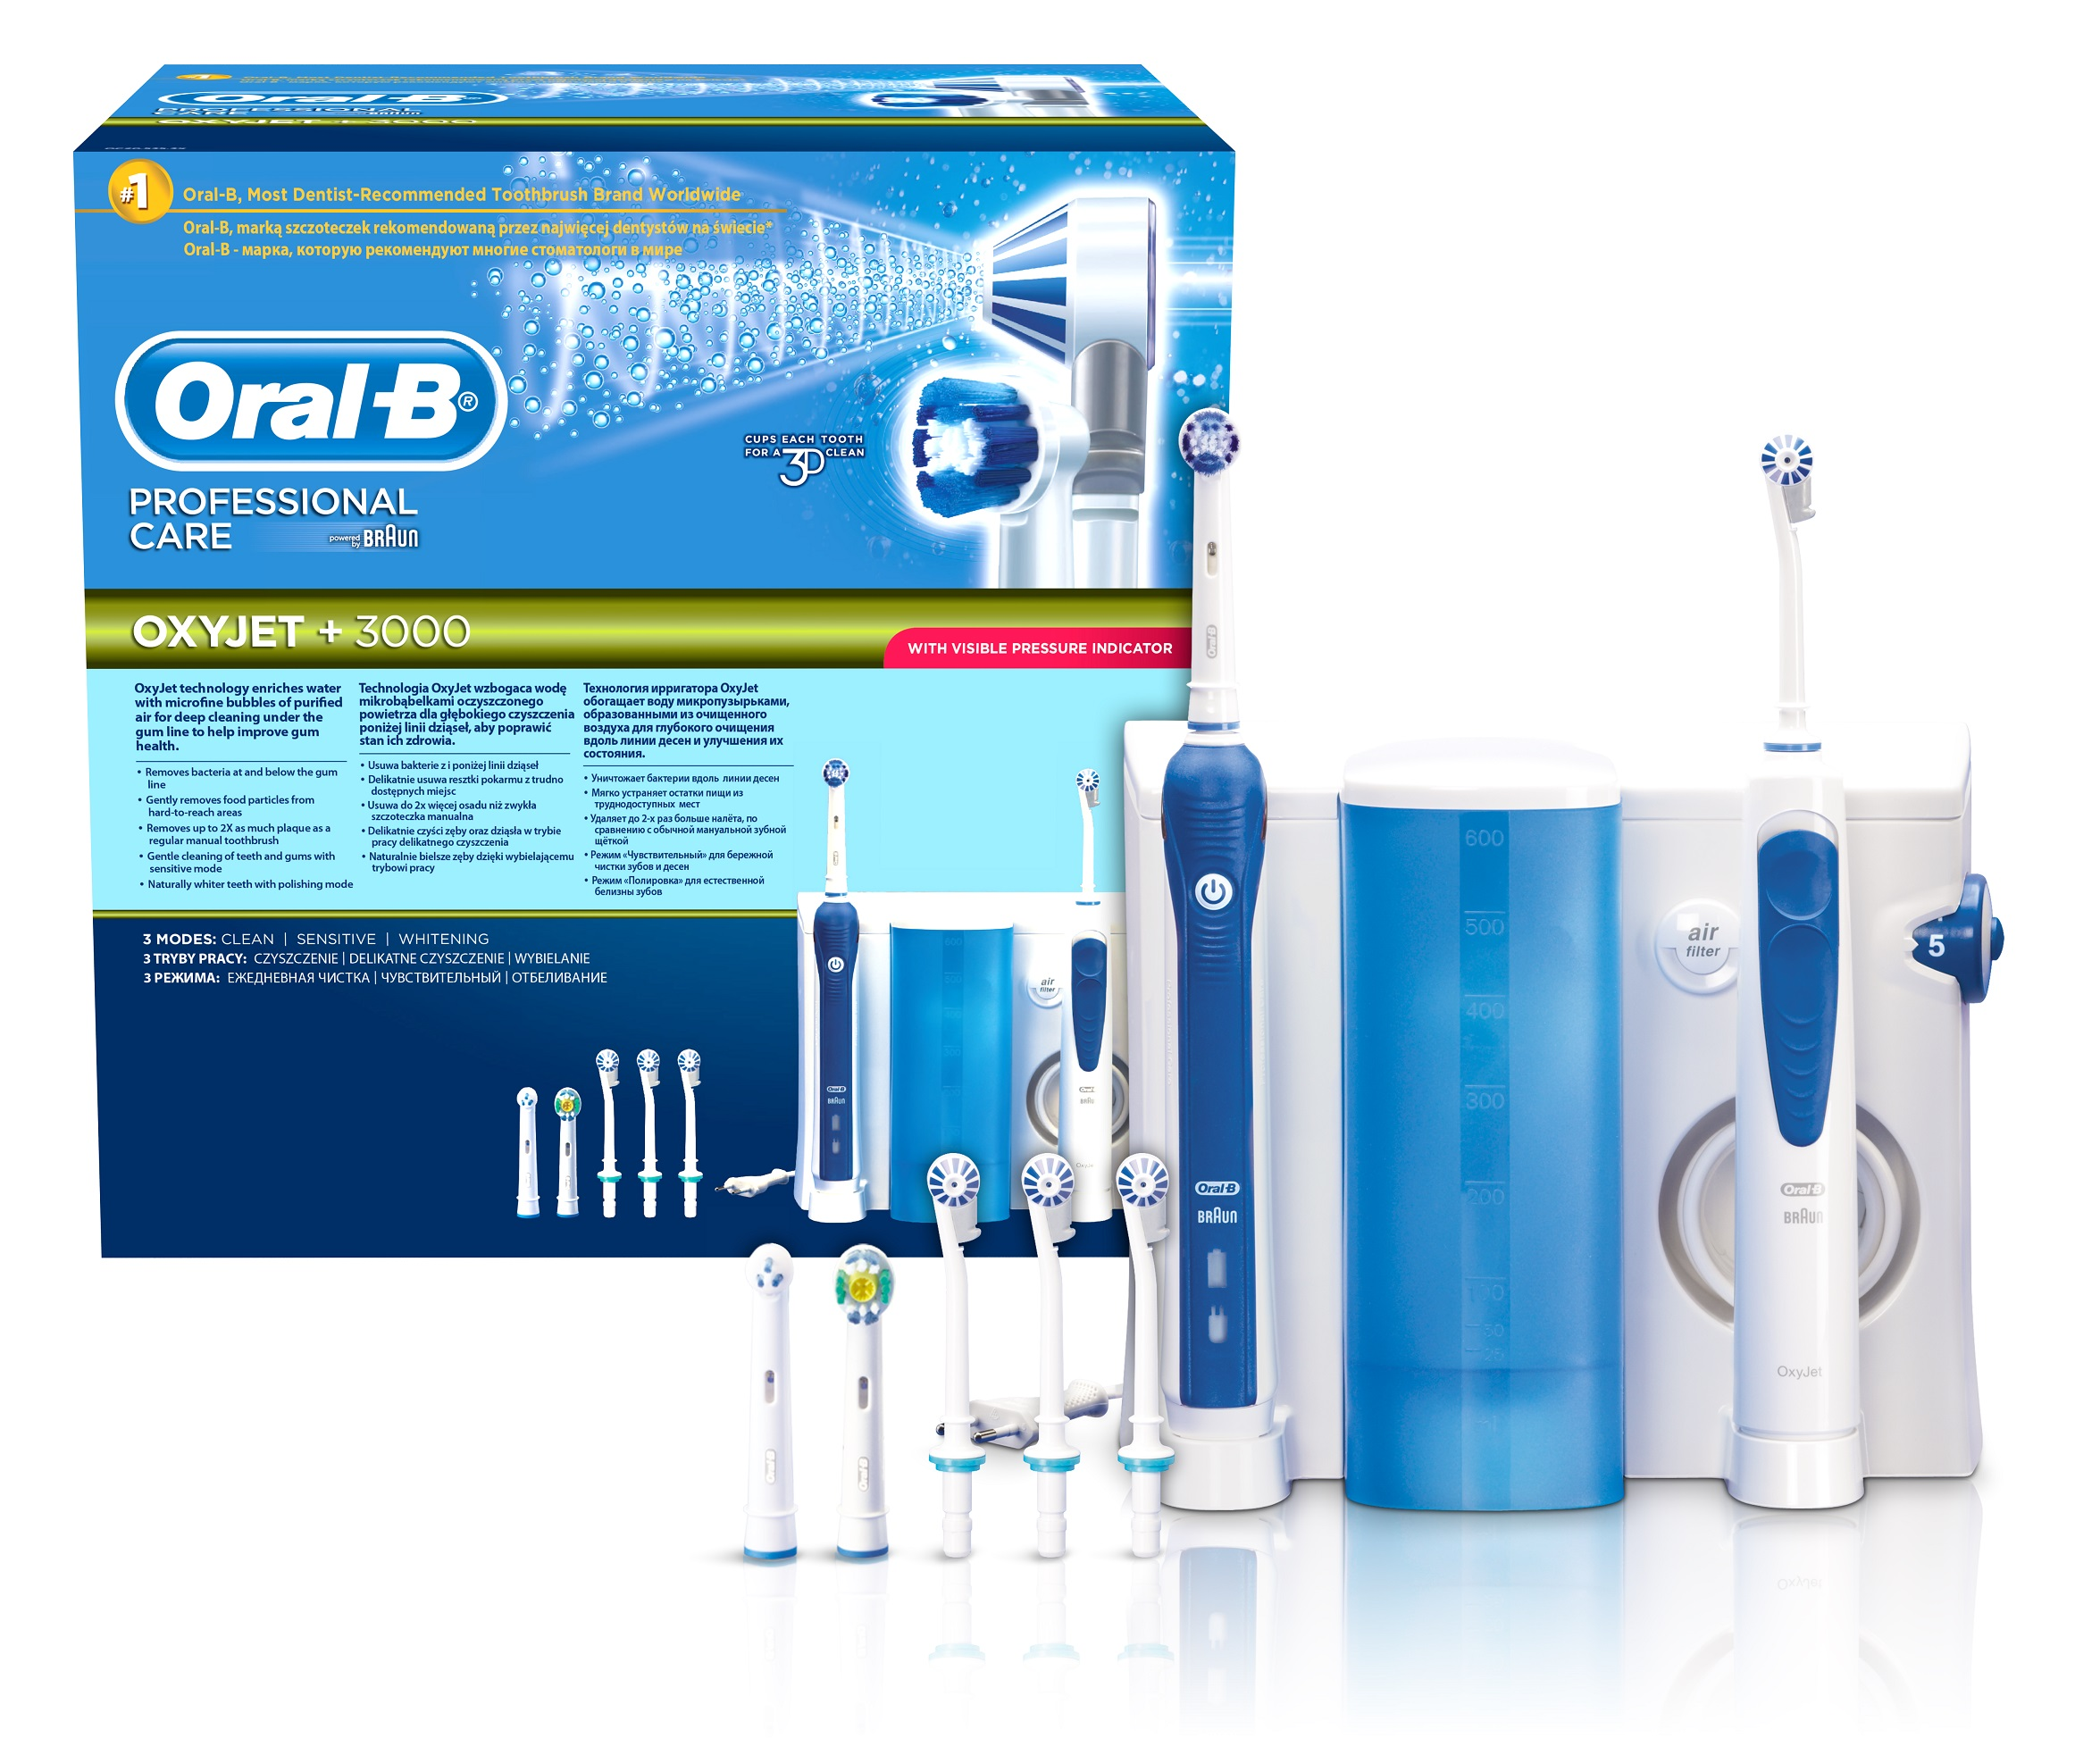 oral b professional care oxyjet 3000 electric toothbrush. Black Bedroom Furniture Sets. Home Design Ideas